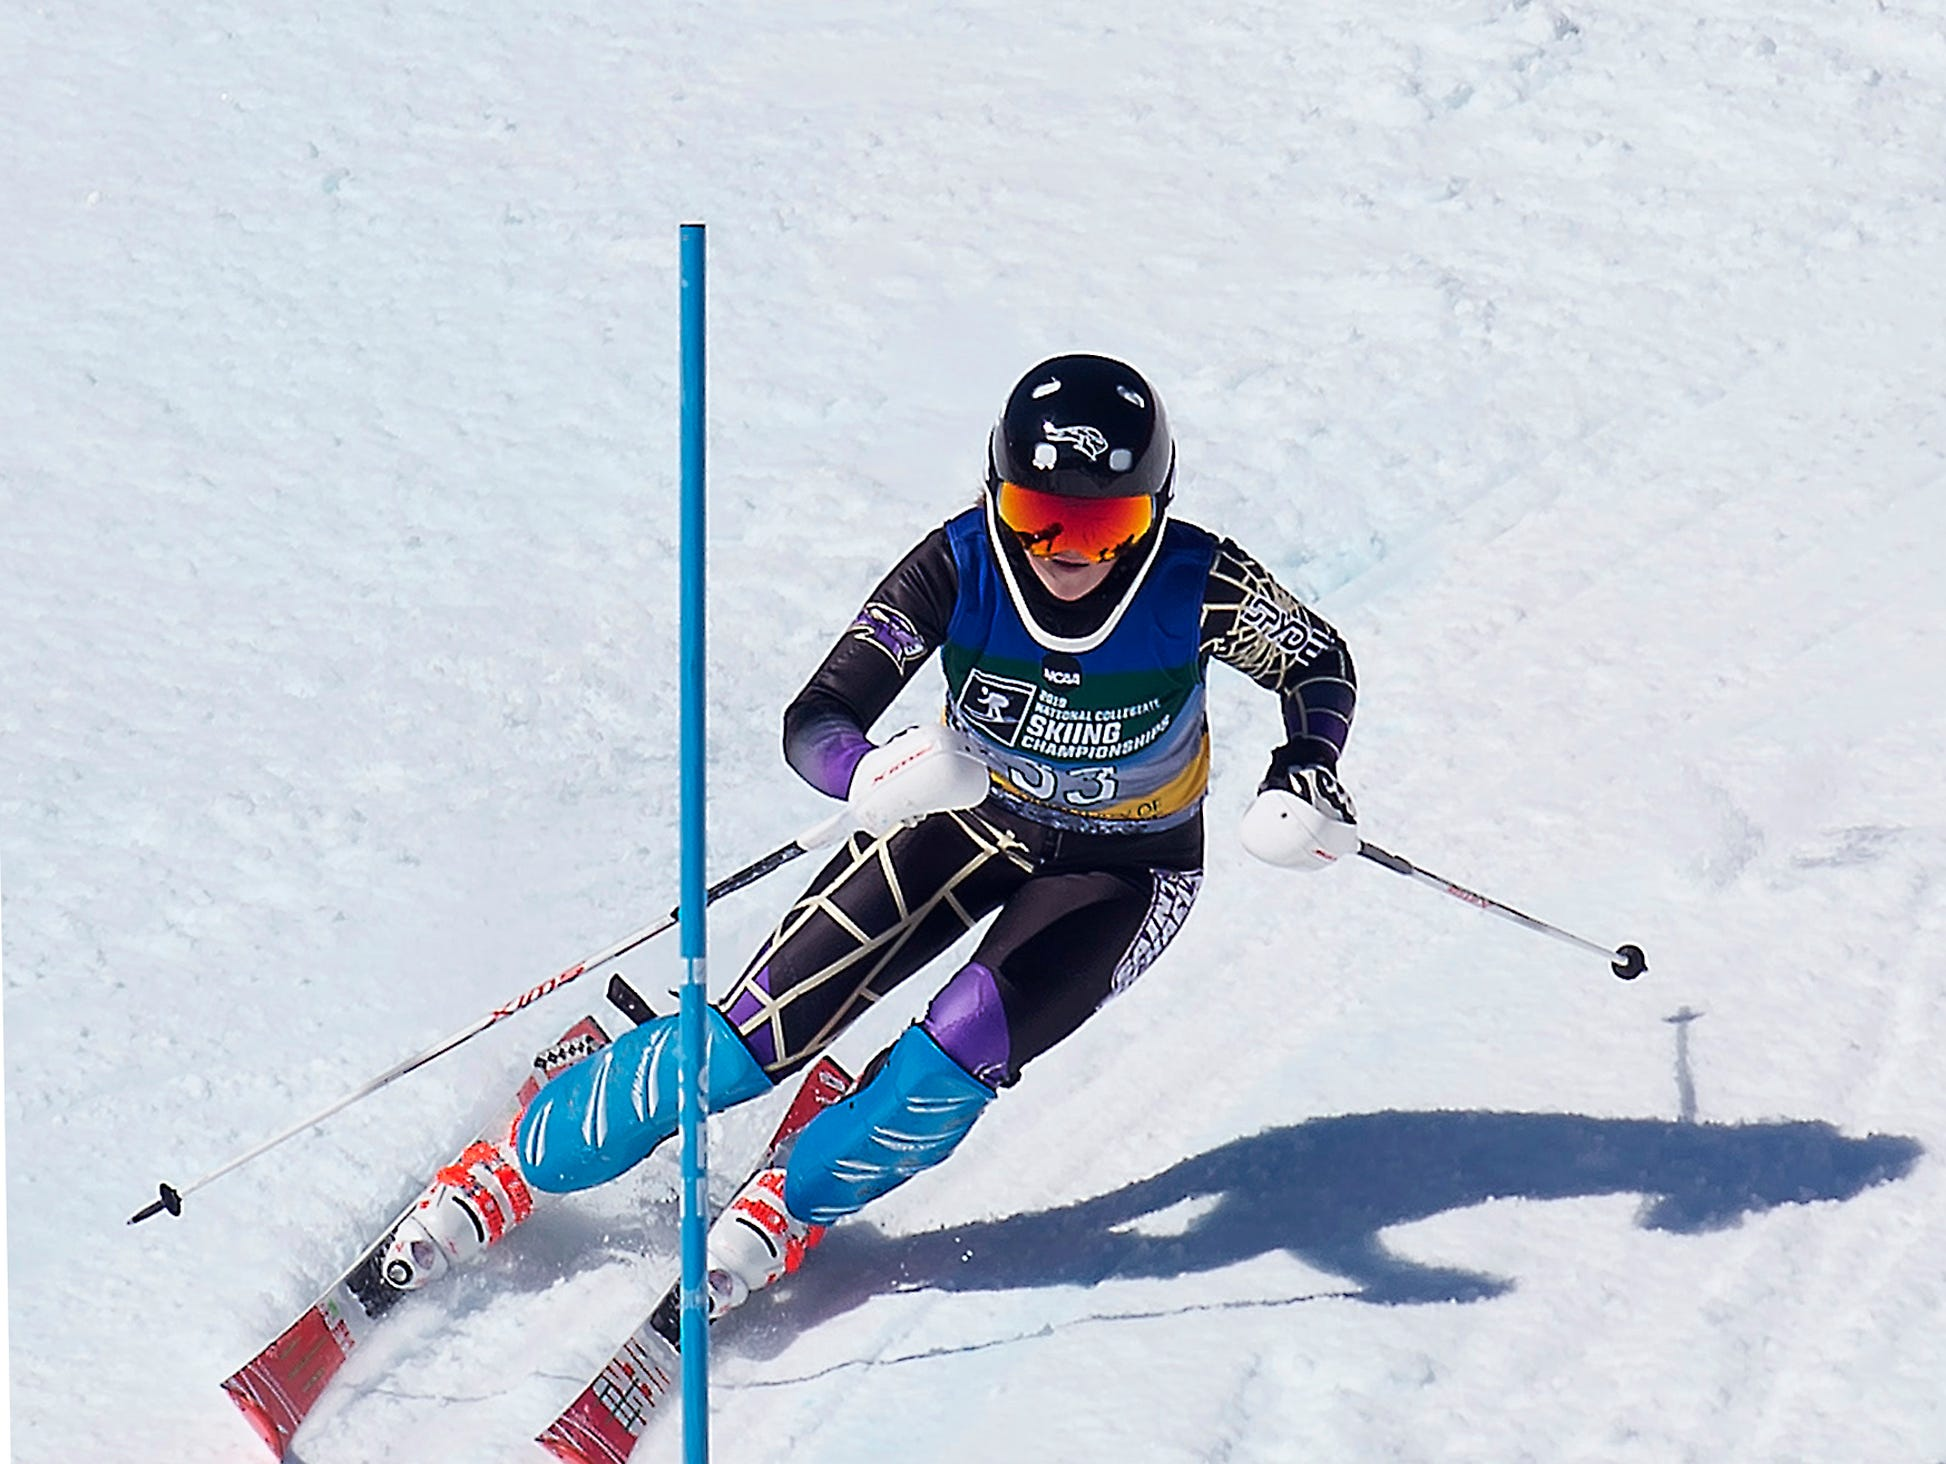 St. MIchael's College skier Anna Willassen races to the finish line at the NCAA slalom championships on Saturday at Stowe Mountain Resort.